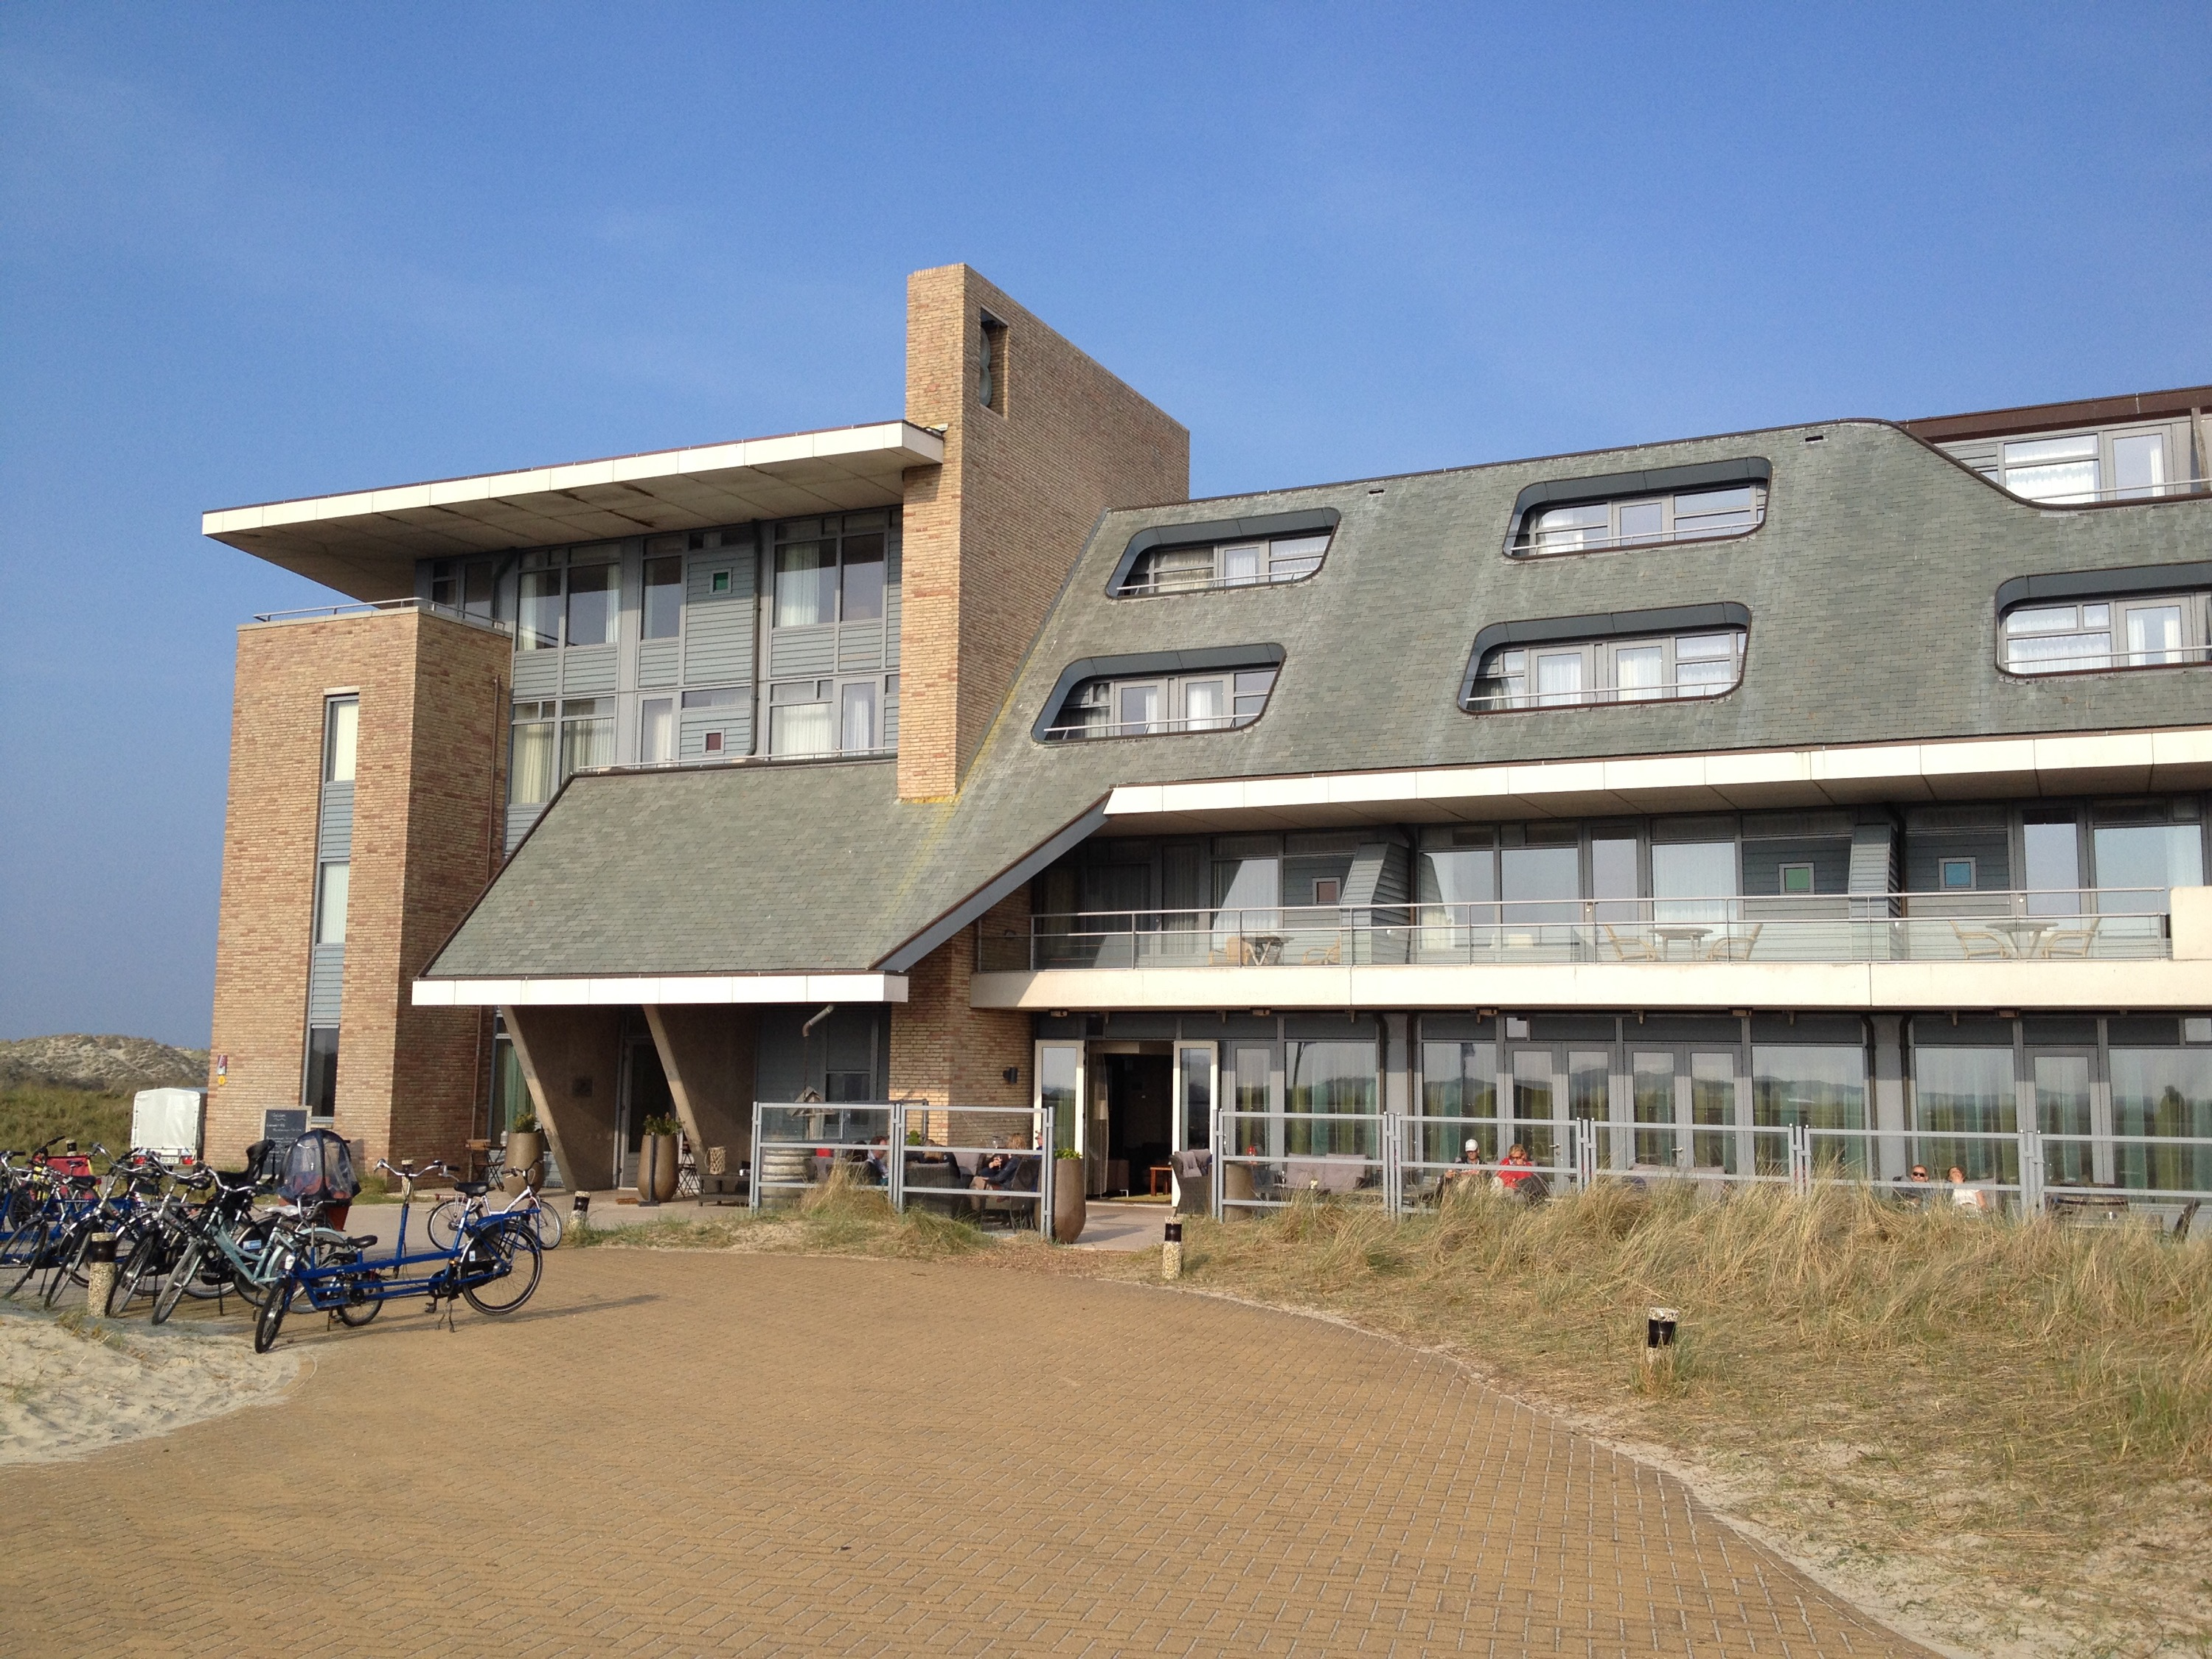 Hotel Paal 8, Terschelling